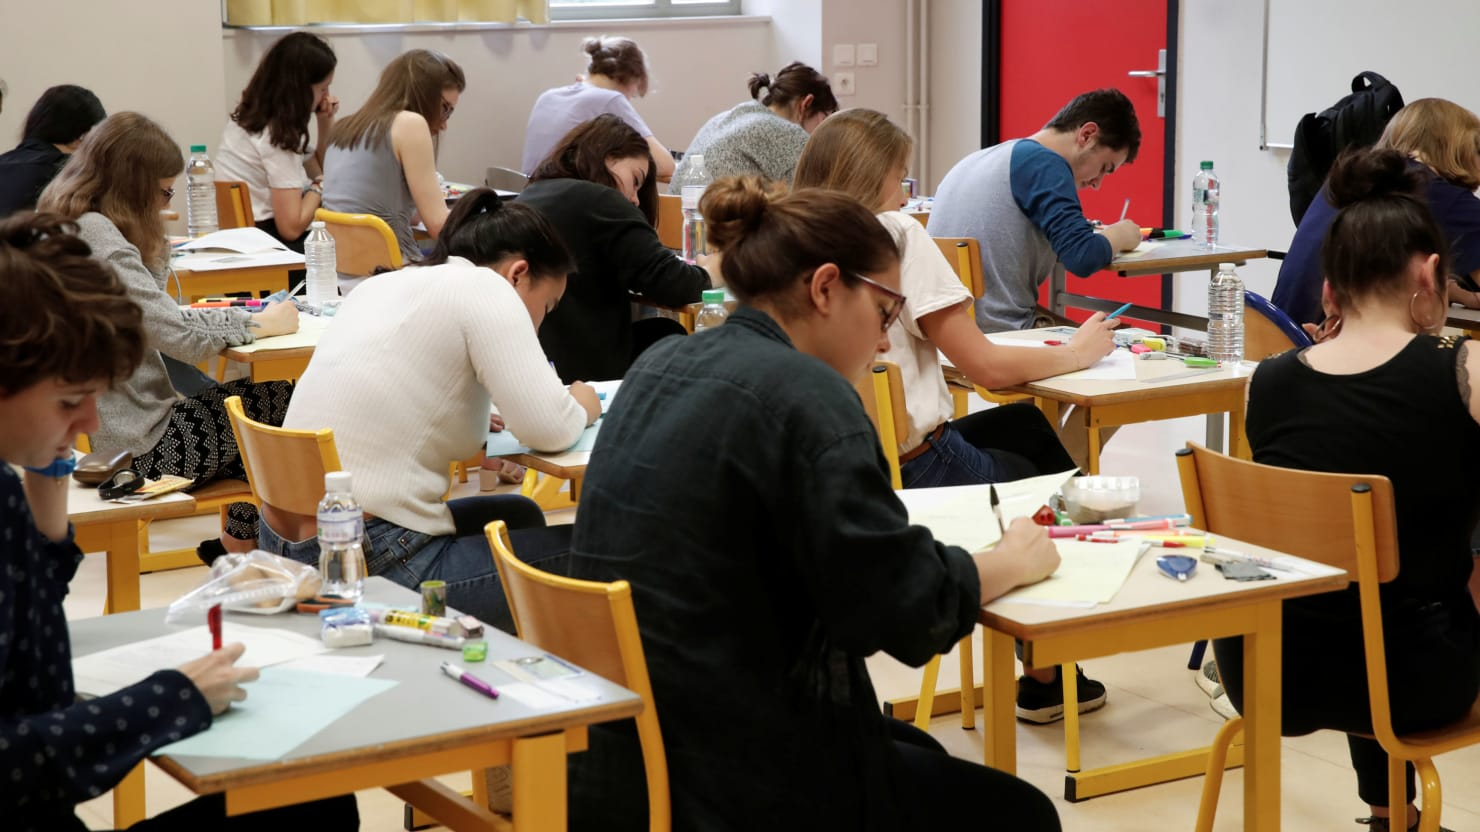 SAT Examiners to Introduce 'Adversity Score' to College Admissions Test